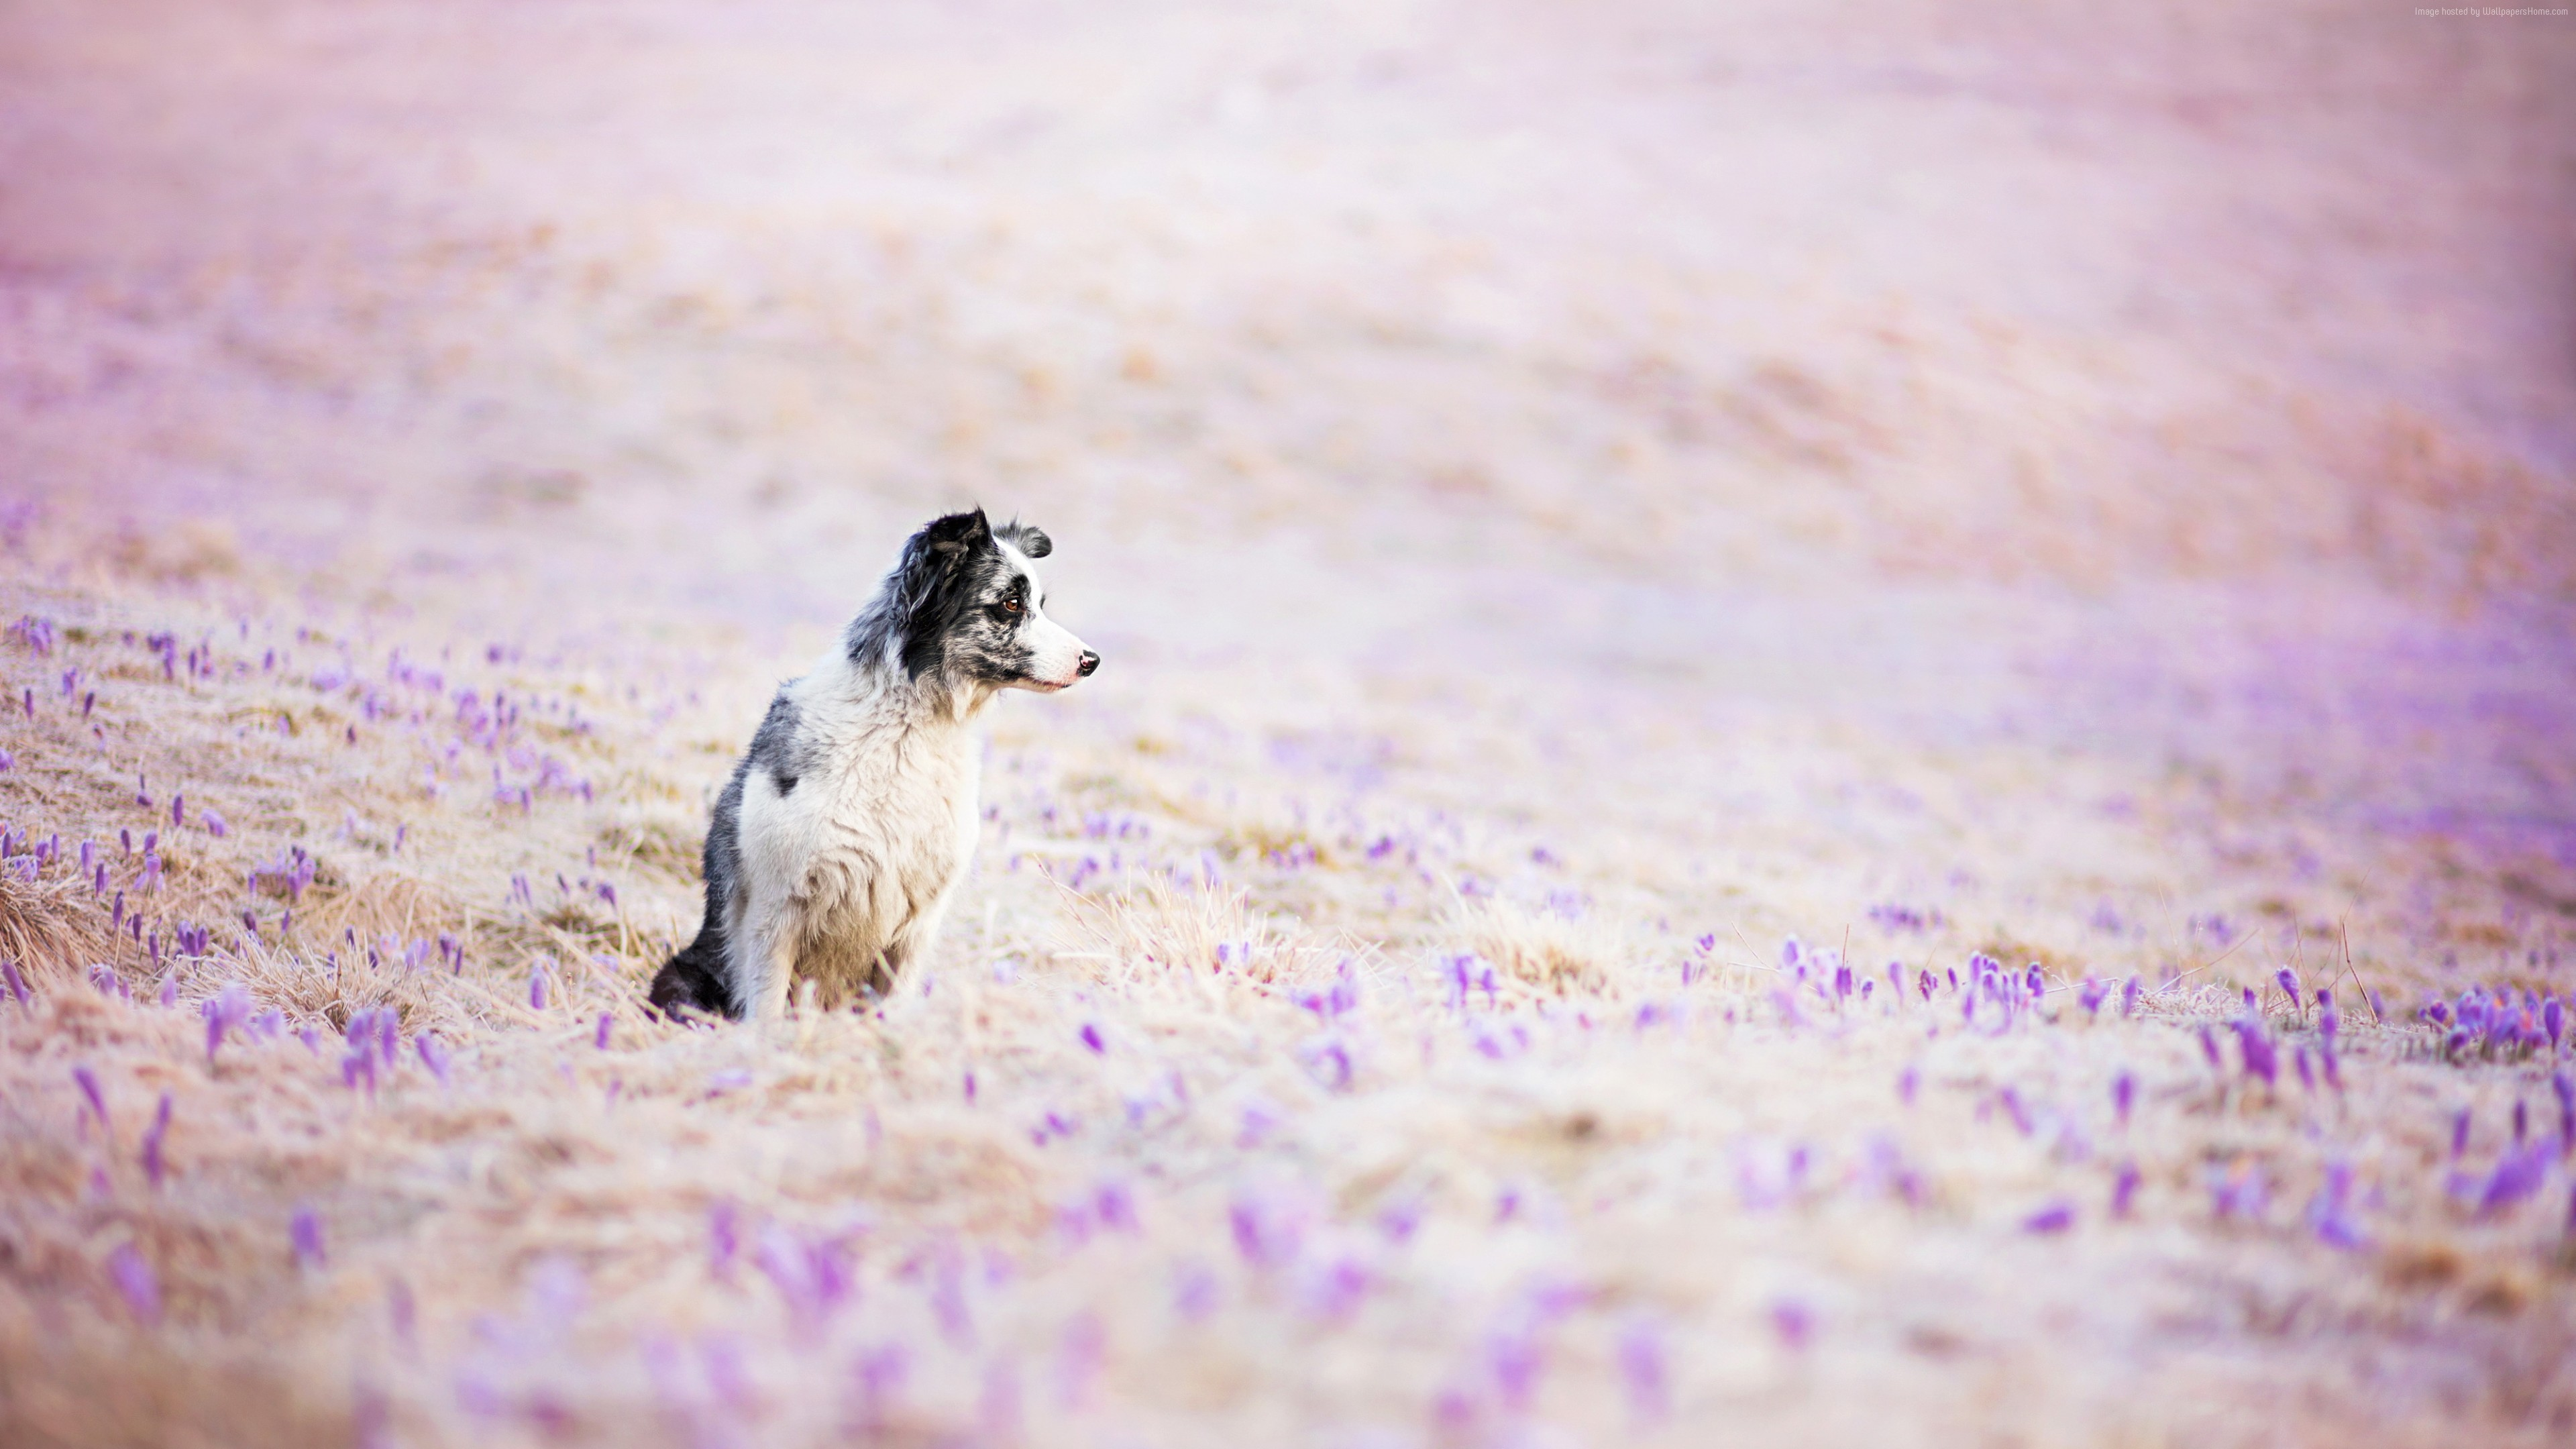 Wallpaper Border Collie, dog, field, cute animals, funny, Animals